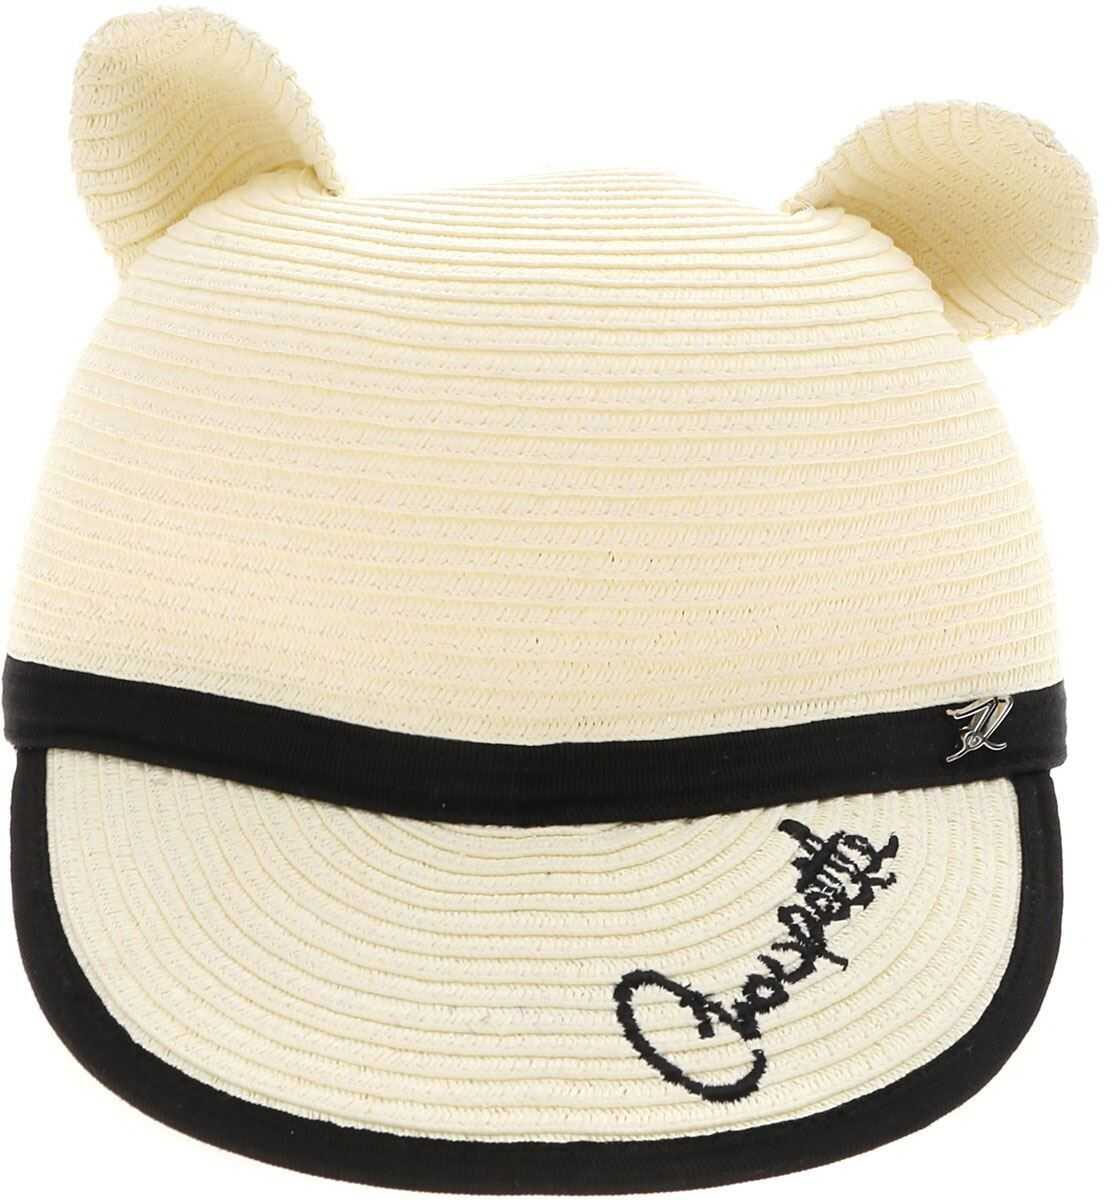 Karl Lagerfeld Choupette Hat In Butter Color Cream